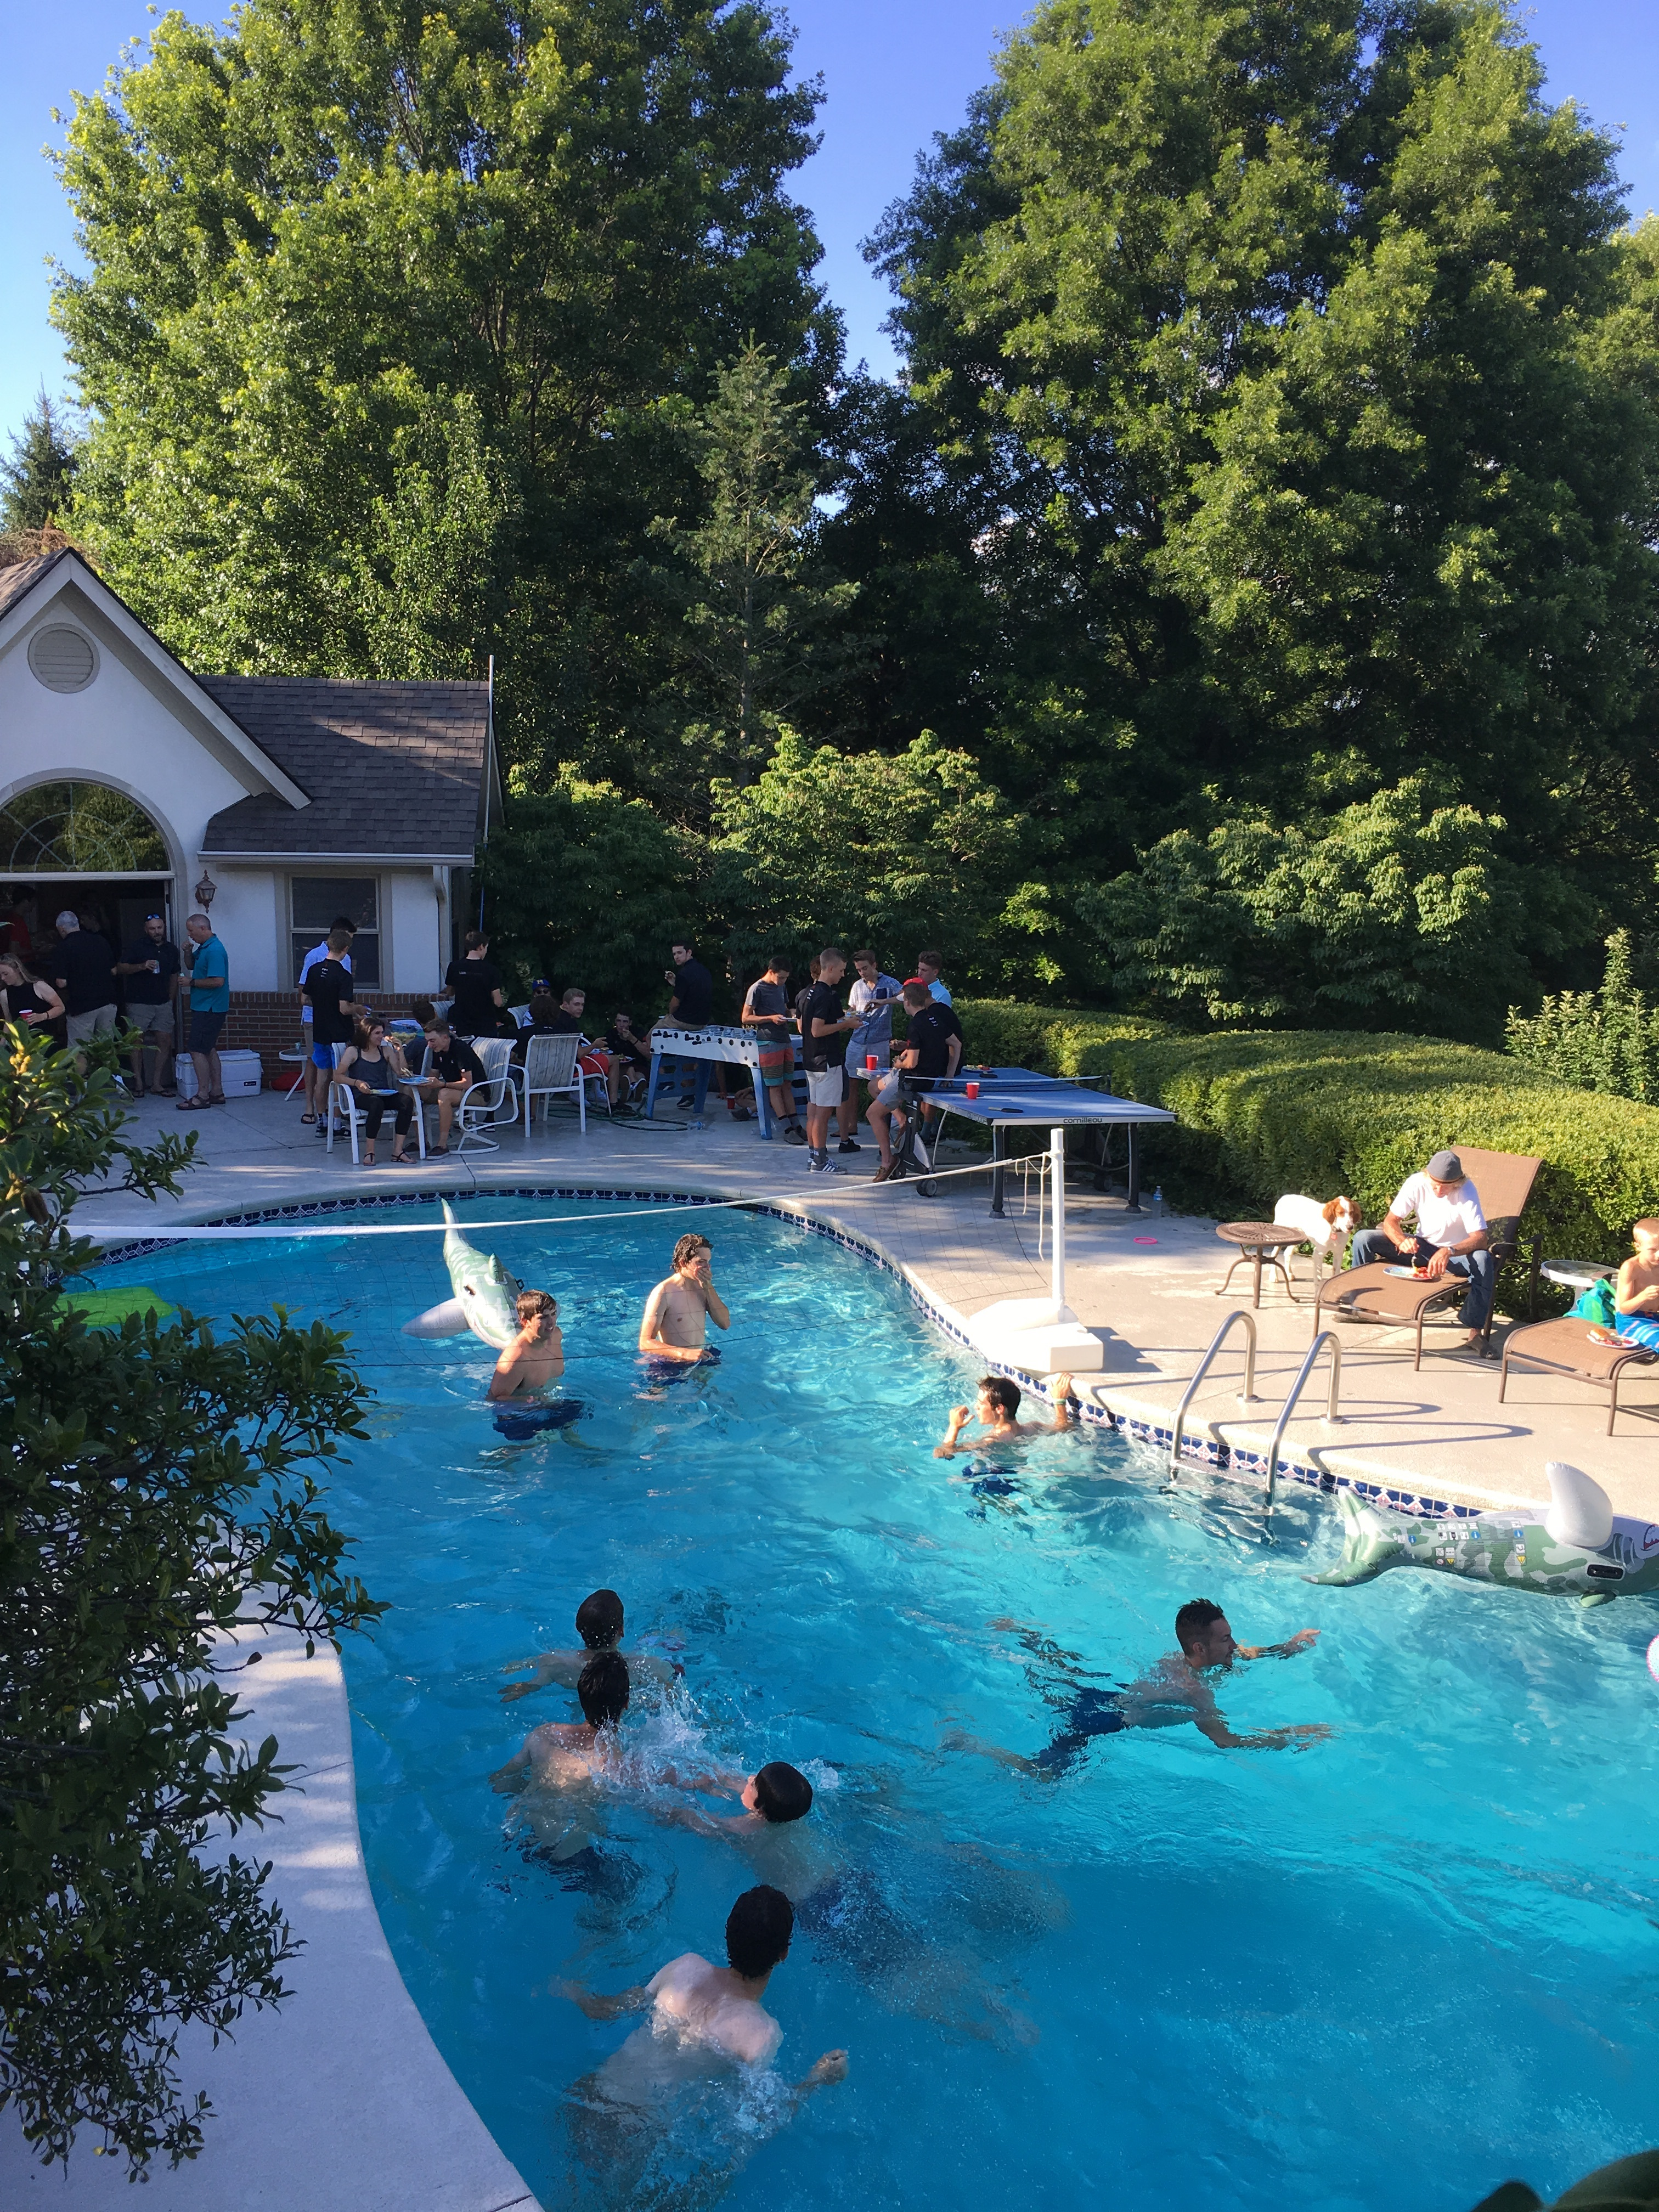 Kids Enjoy The Pool At Dr Grossfelds Party On June 28 2016 Louisville